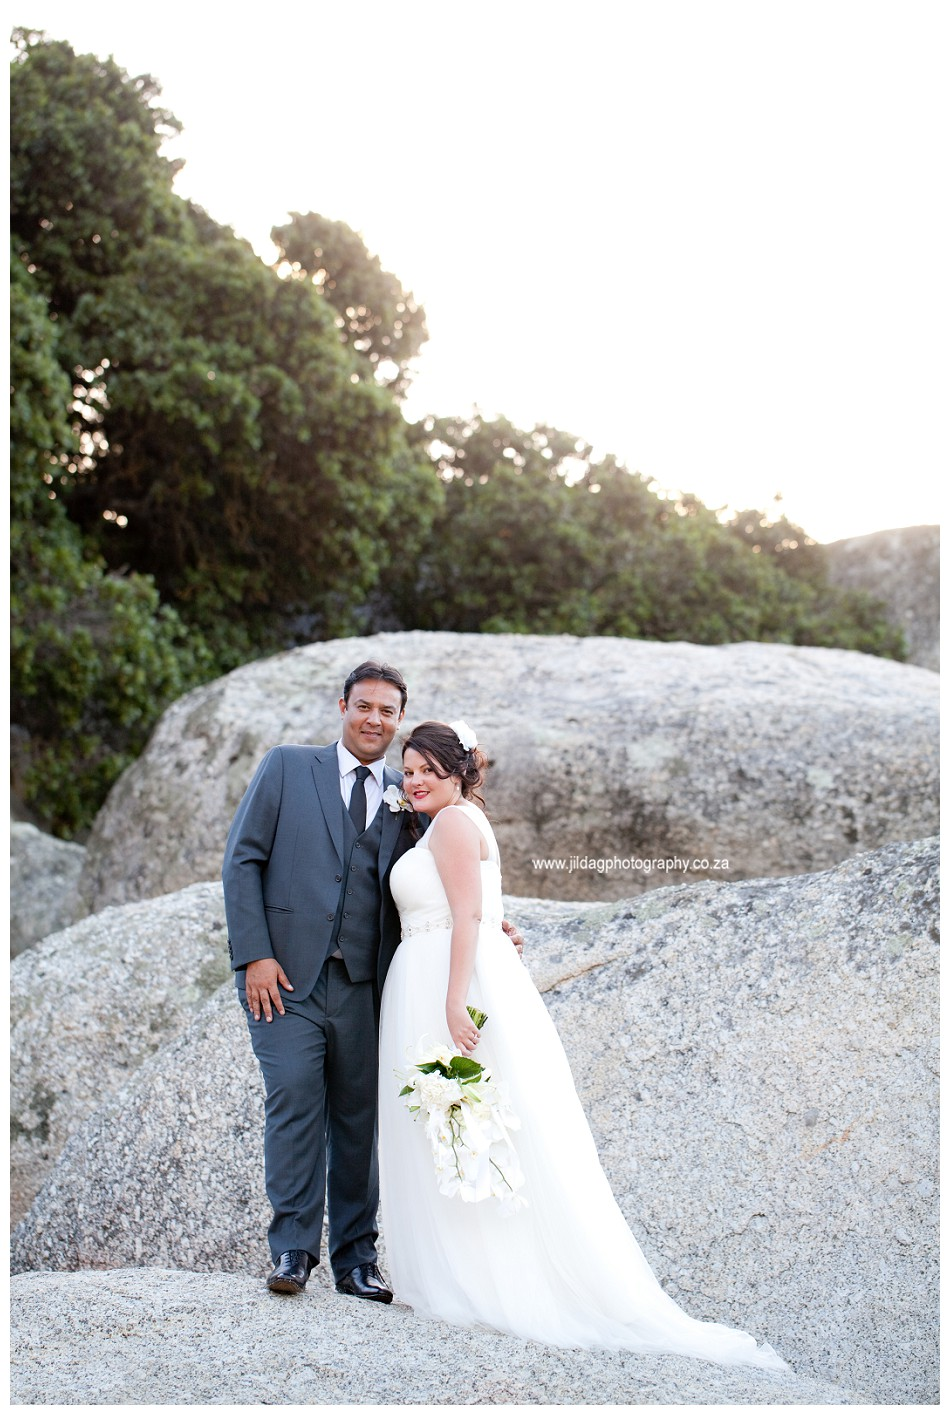 The-12-Apostles-wedding-photographer-Jilda-G-photography_Cape-Town (508)